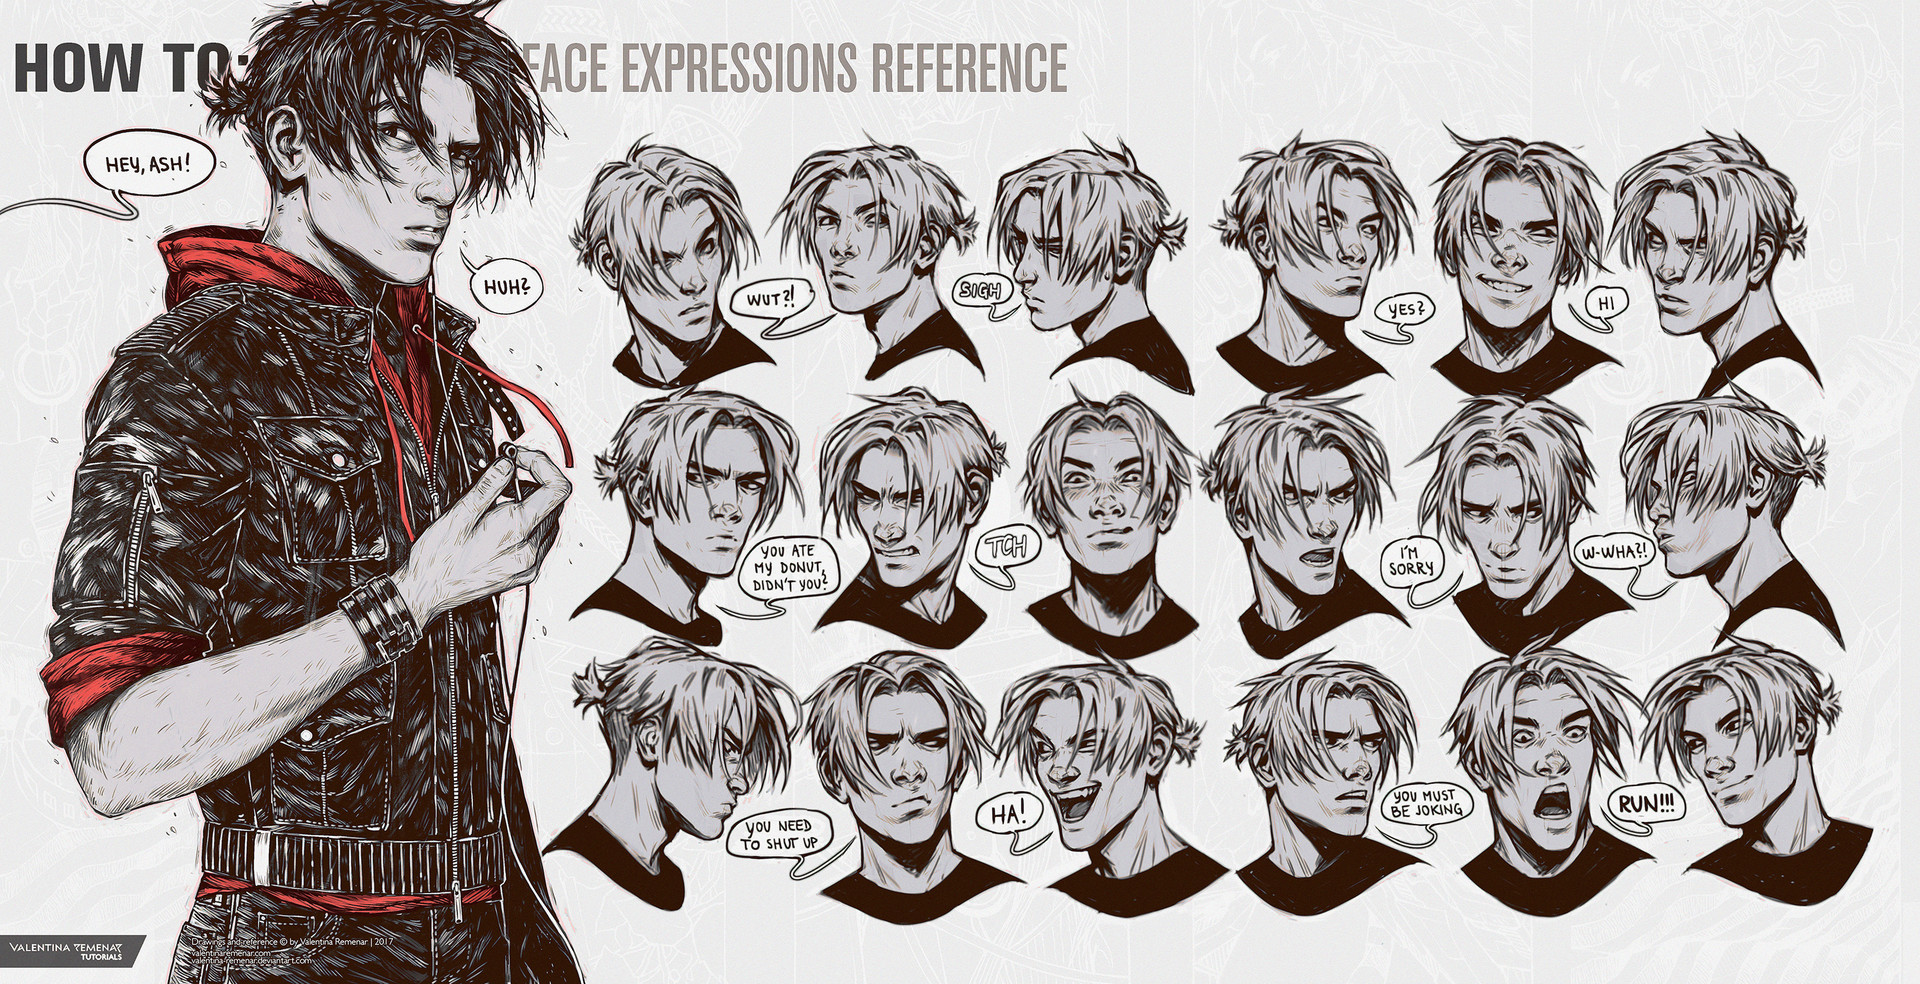 Valentina remenar how to face expressions reference by valentina remenar